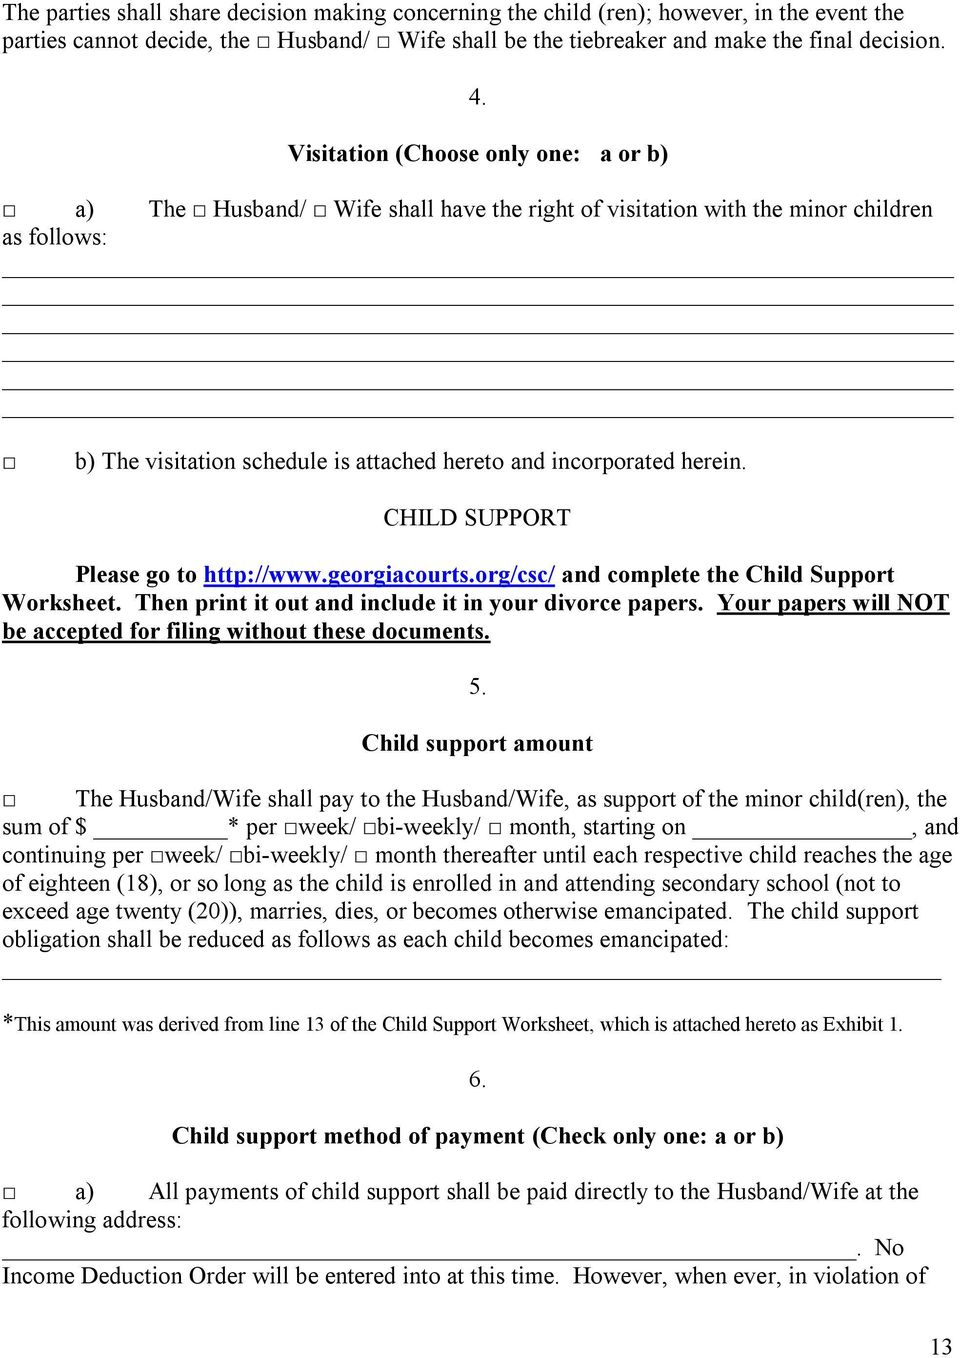 CHILD SUPPORT Please go to http://www.georgiacourts.org/csc/ and complete the Child Support Worksheet. Then print it out and include it in your divorce papers.